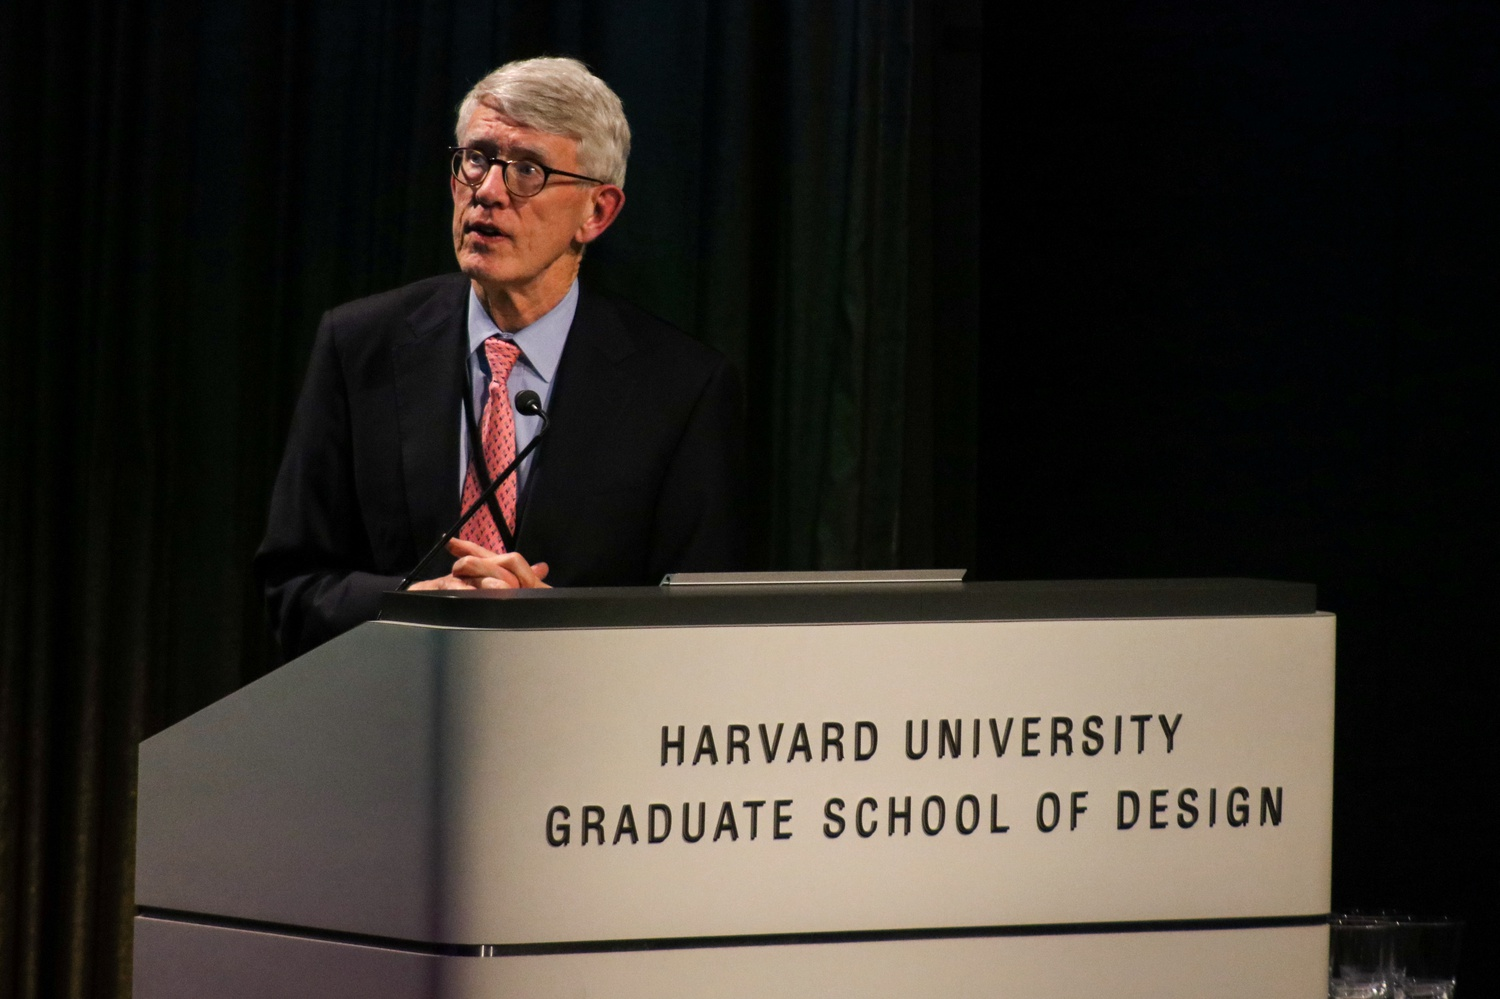 Thomas P. Glynn III, CEO of the Harvard Allston Land Company, speaks at a Graduate School of Design event in February 2020.